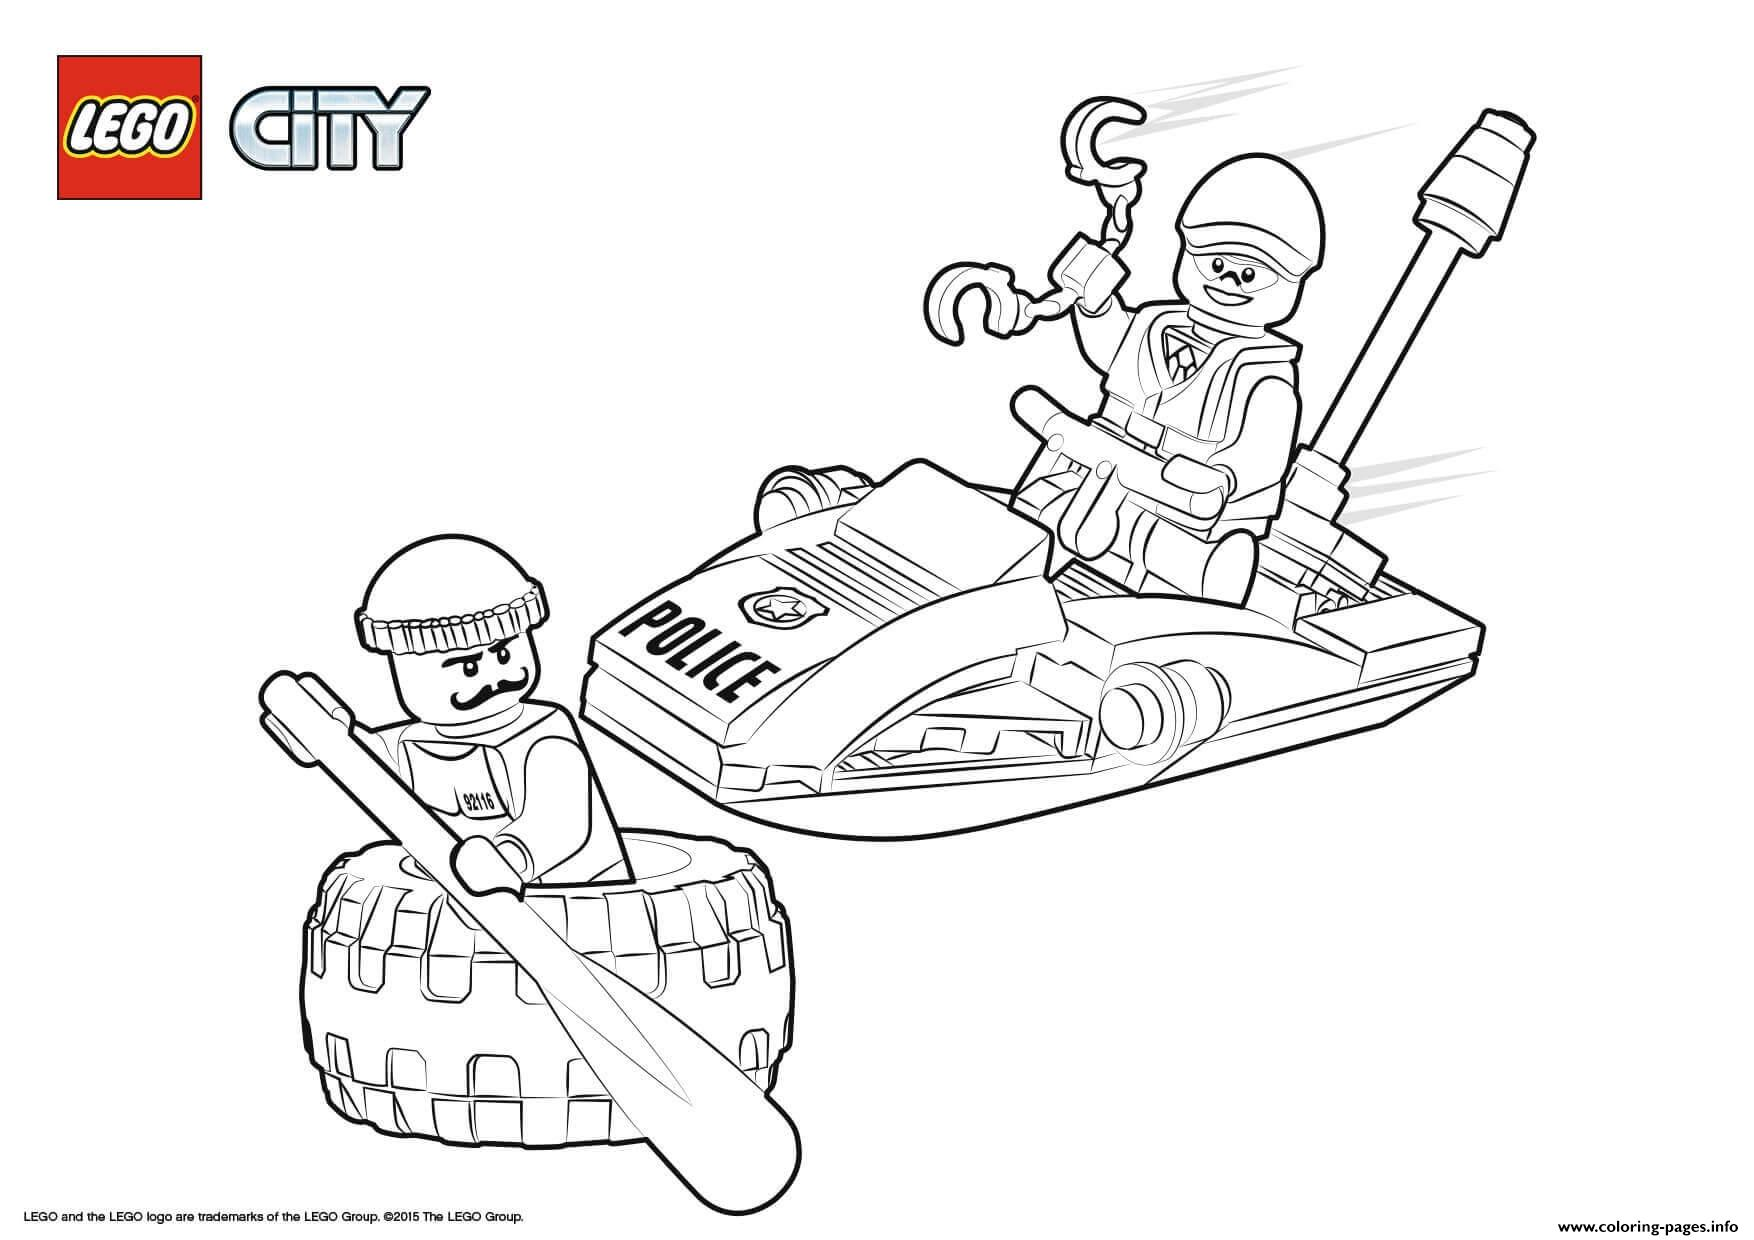 Lego City Police Tire Escape coloring pages